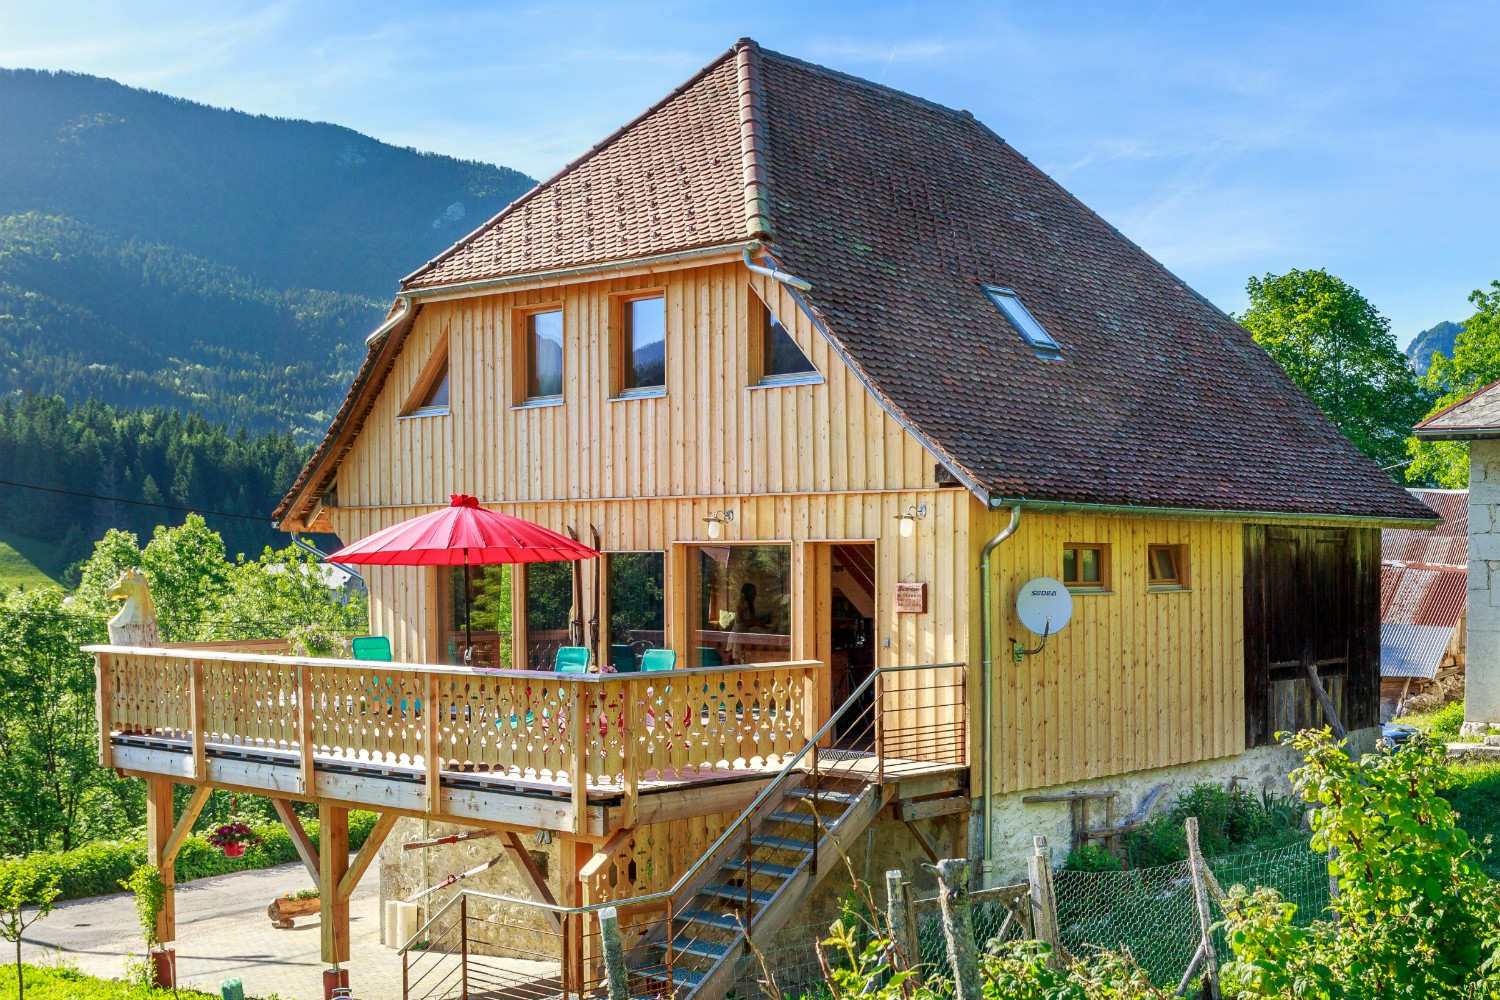 Holiday Home in the Alps near Grenoble, France - Site de gite-cheval ...